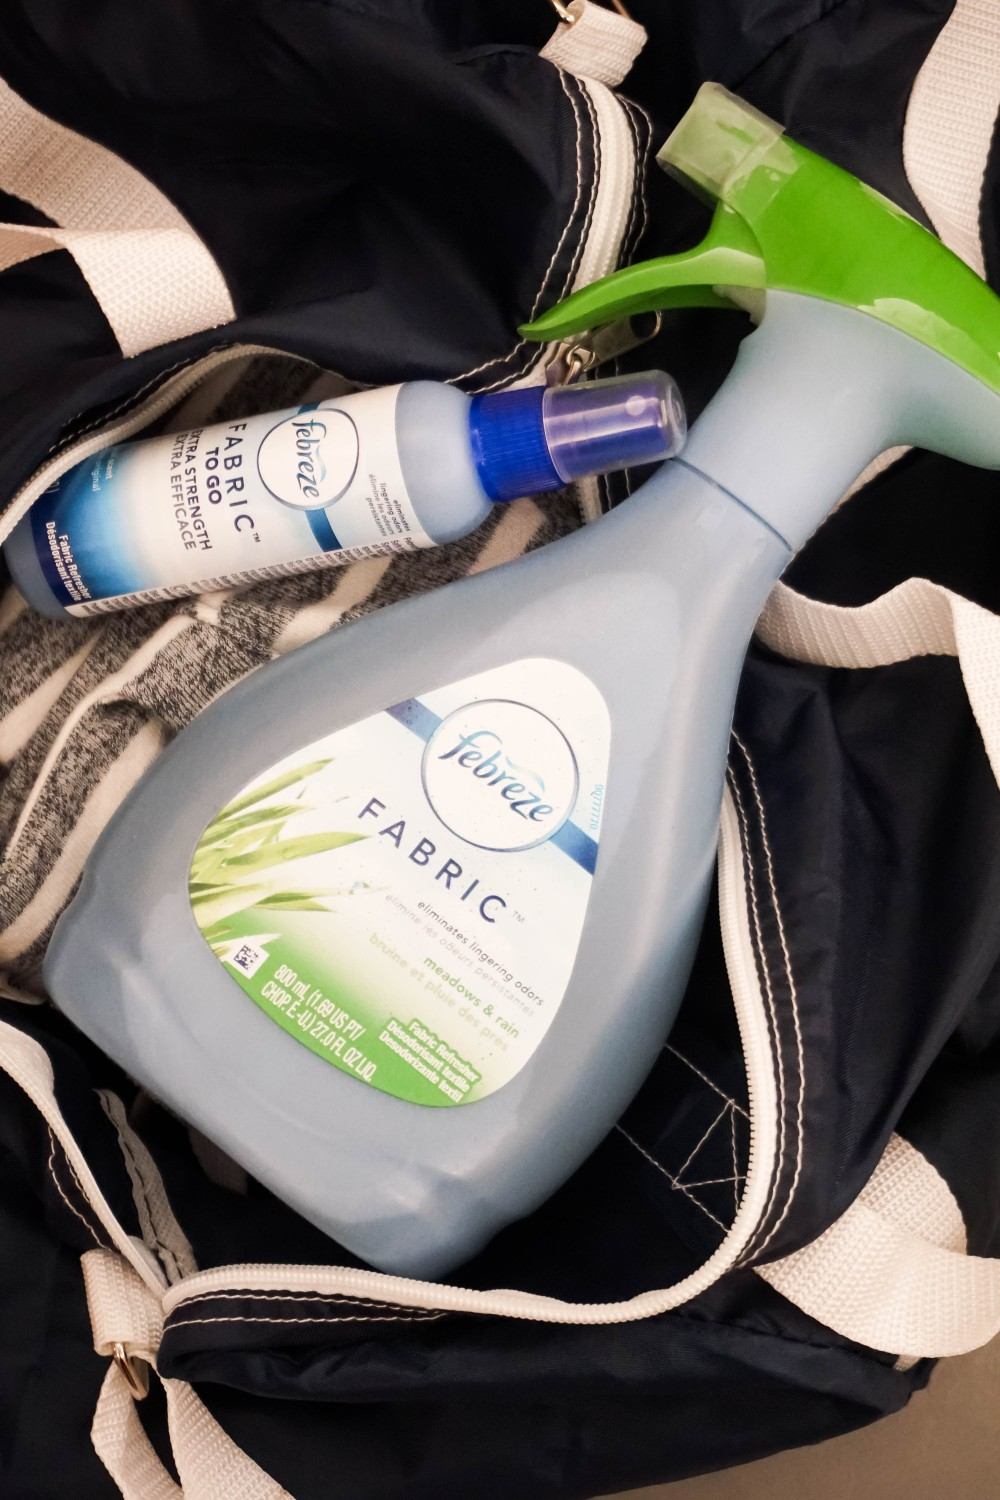 Febreze Your Gear Post Workout - Have Need Want #FebrezeYourGear